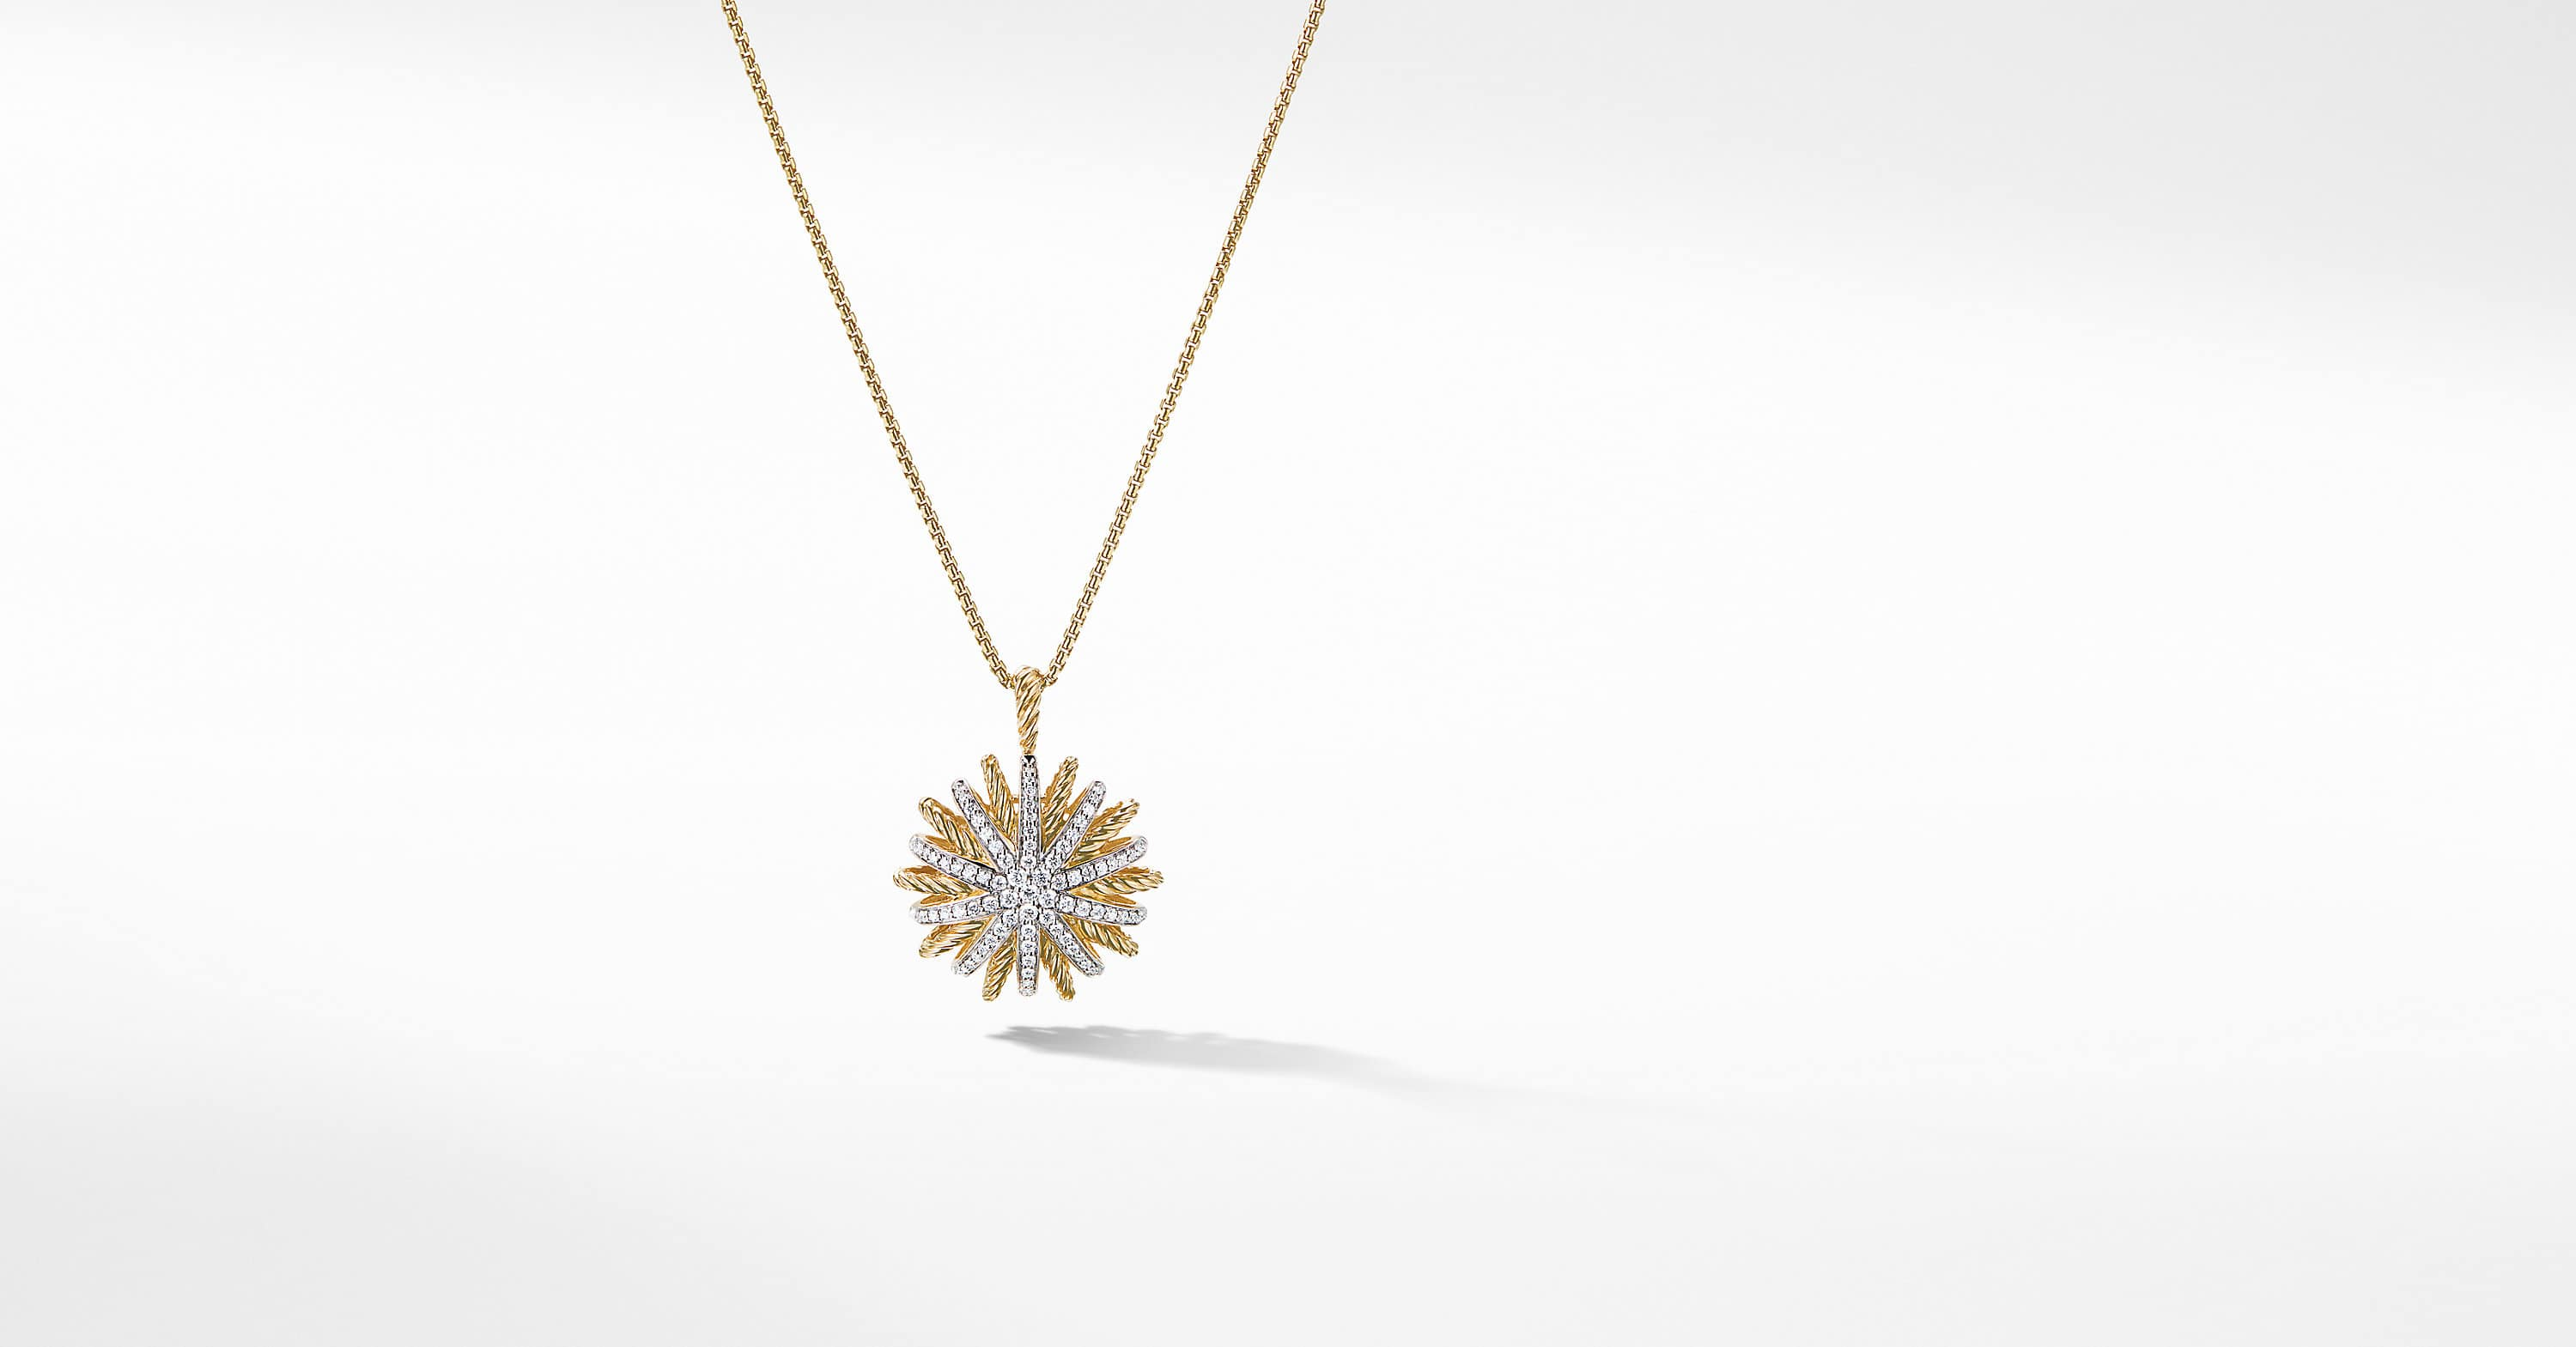 Starburst Medium Pendant in 18K Yellow Gold with Diamonds, 22mm